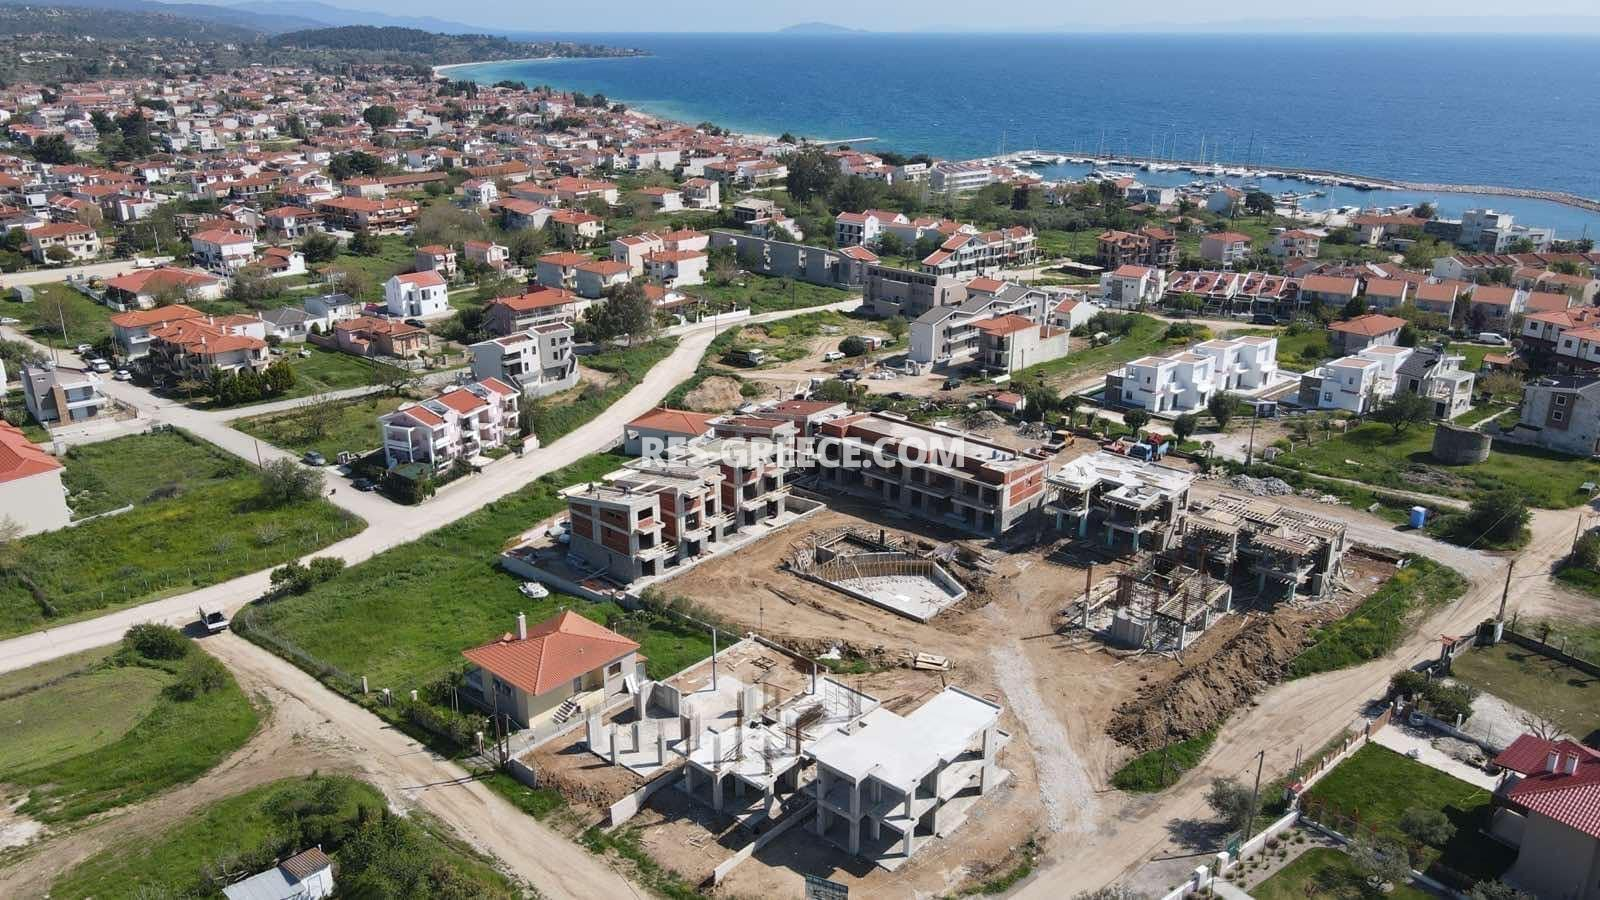 Anasa townhouses, Halkidiki-Sithonia, Greece - cottages in a new complex with the pool - Photo 15